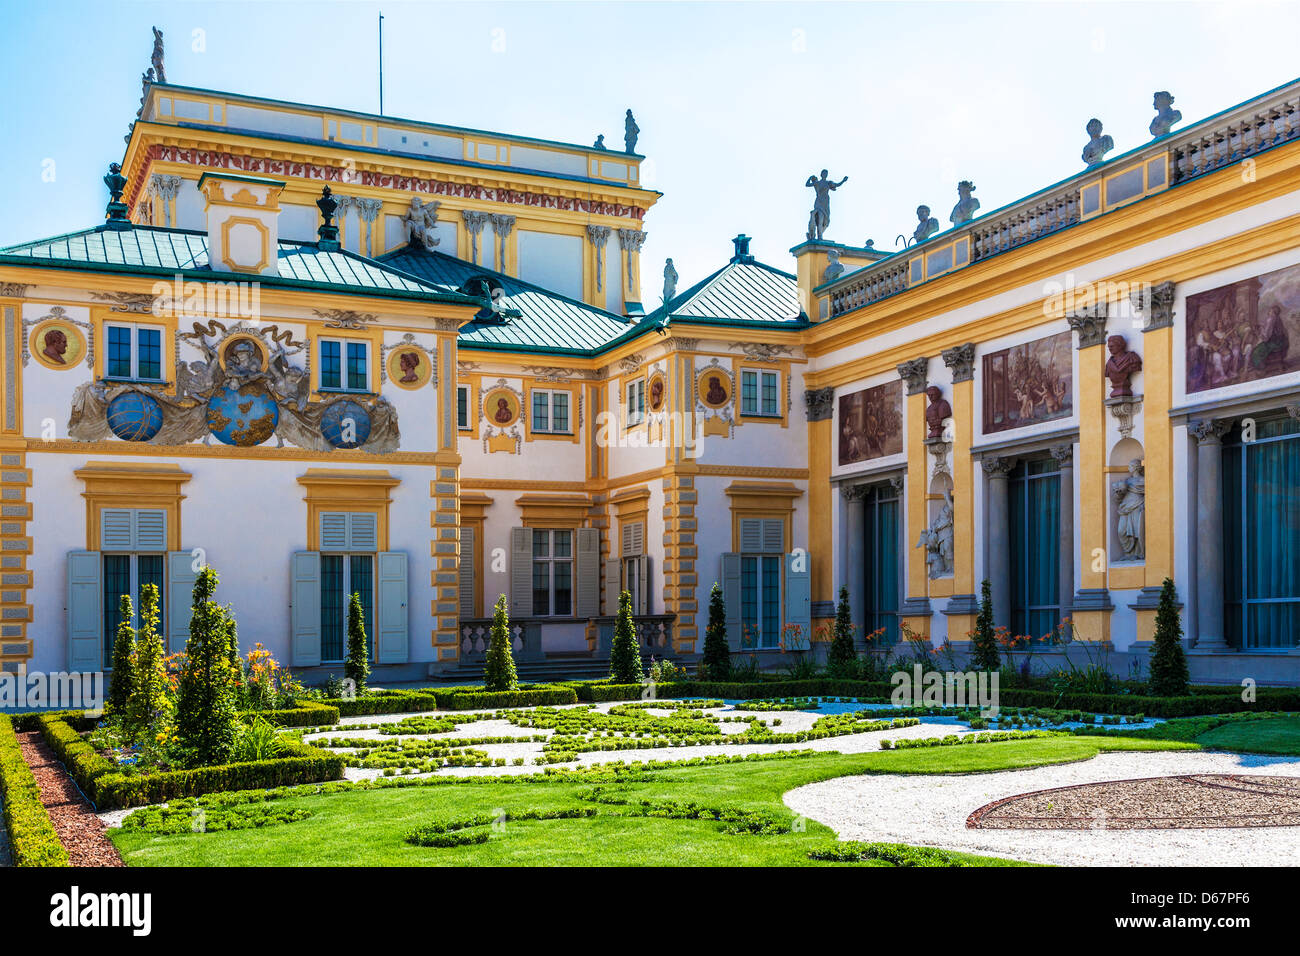 A fine example of 17th century baroque architecture at the for Baroque architecture examples